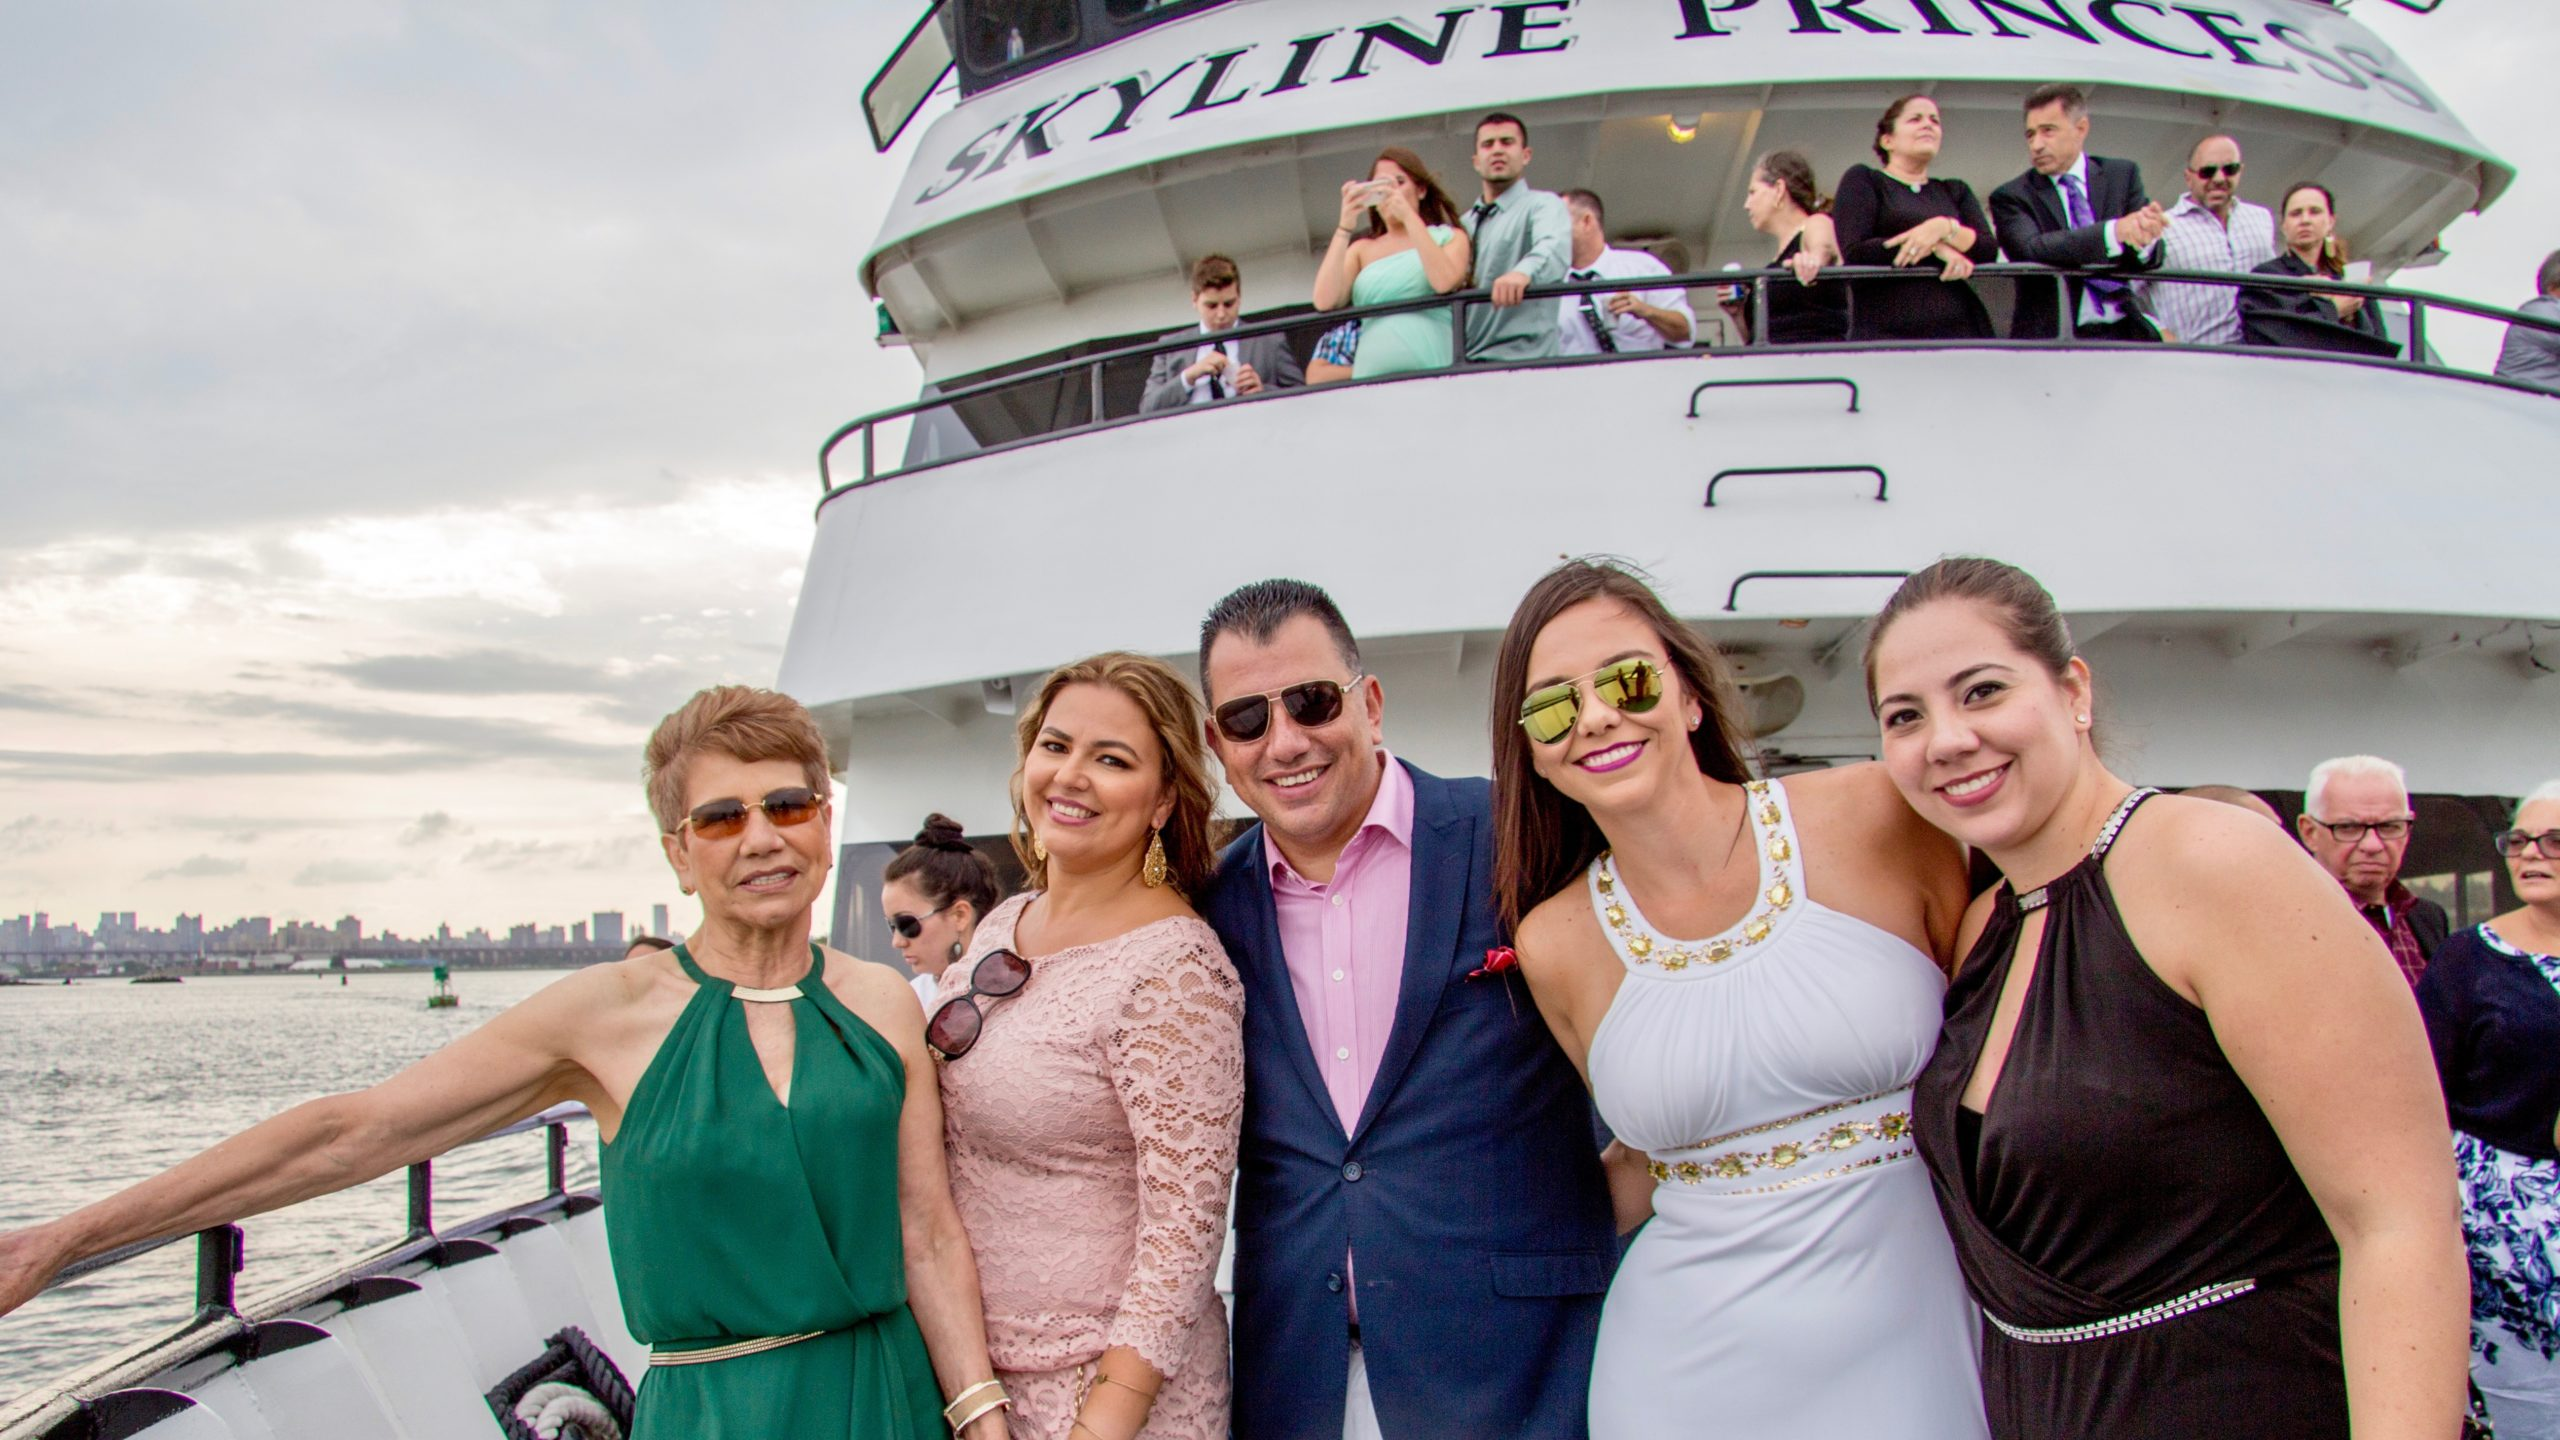 group photo aboard skyline princess